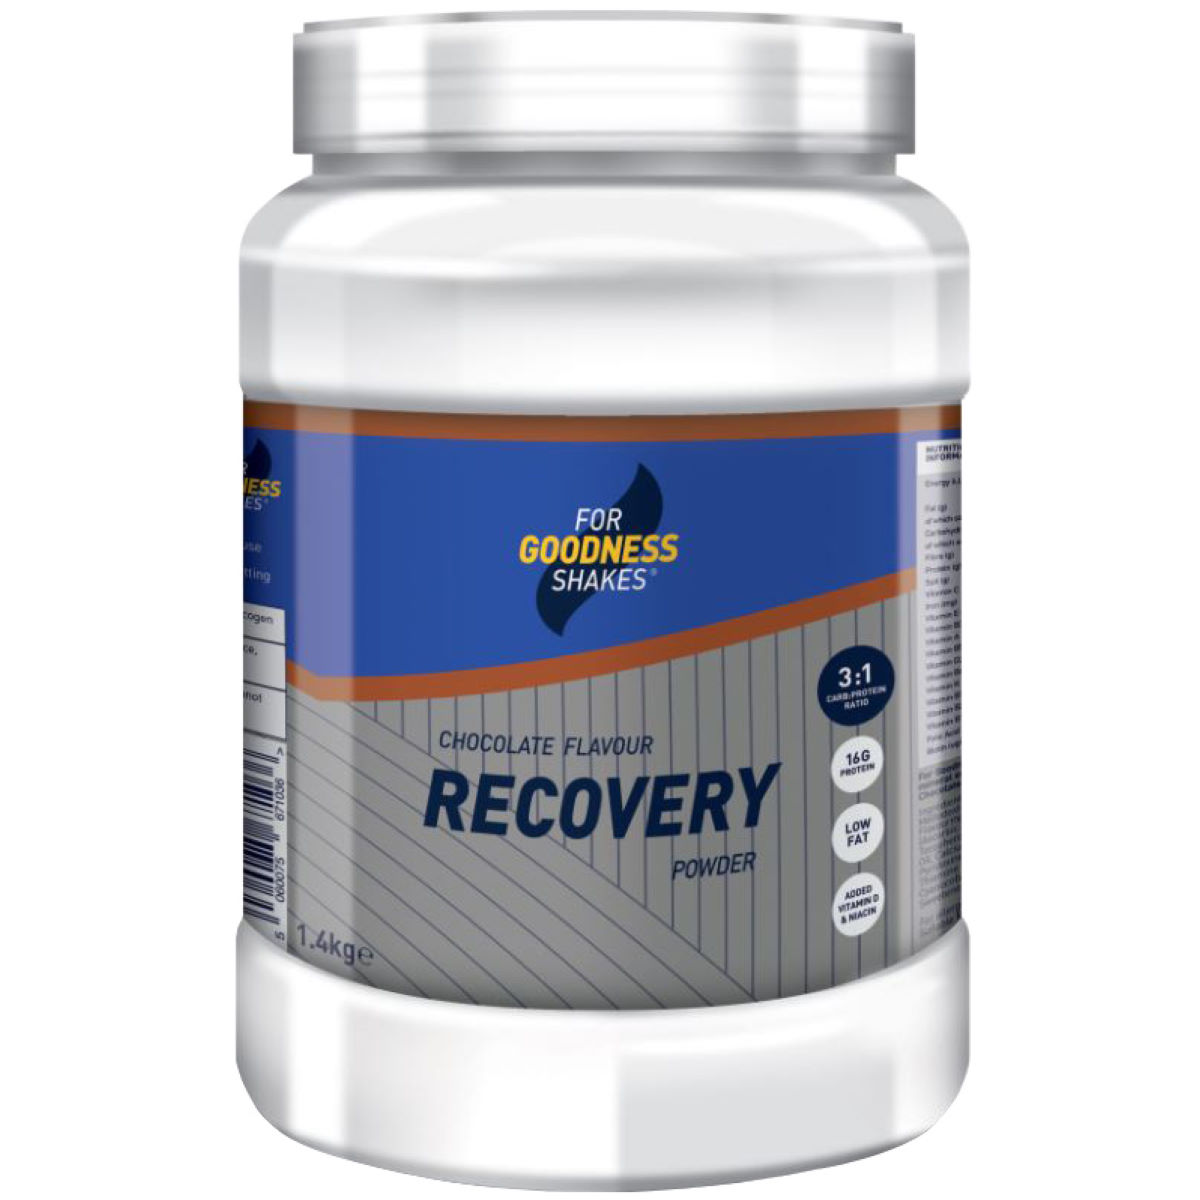 For Goodness Shakes Recovery Powder (1.4kg) - 1.4 Kg Chocolate